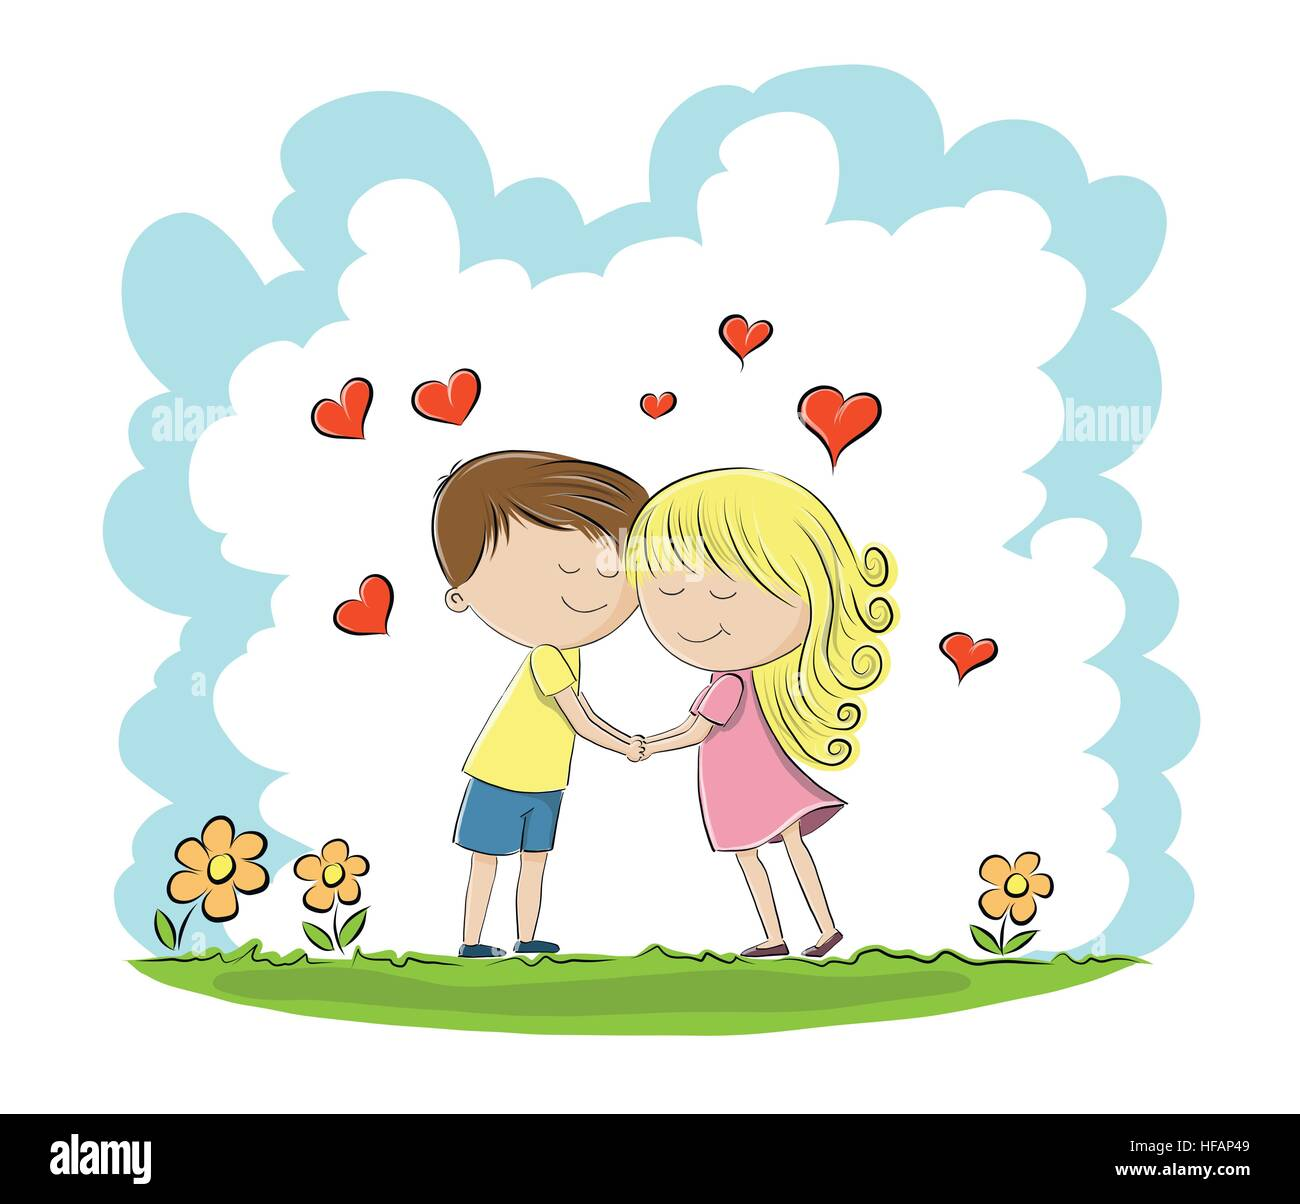 two people in love hand draw sketch stock vector art illustration